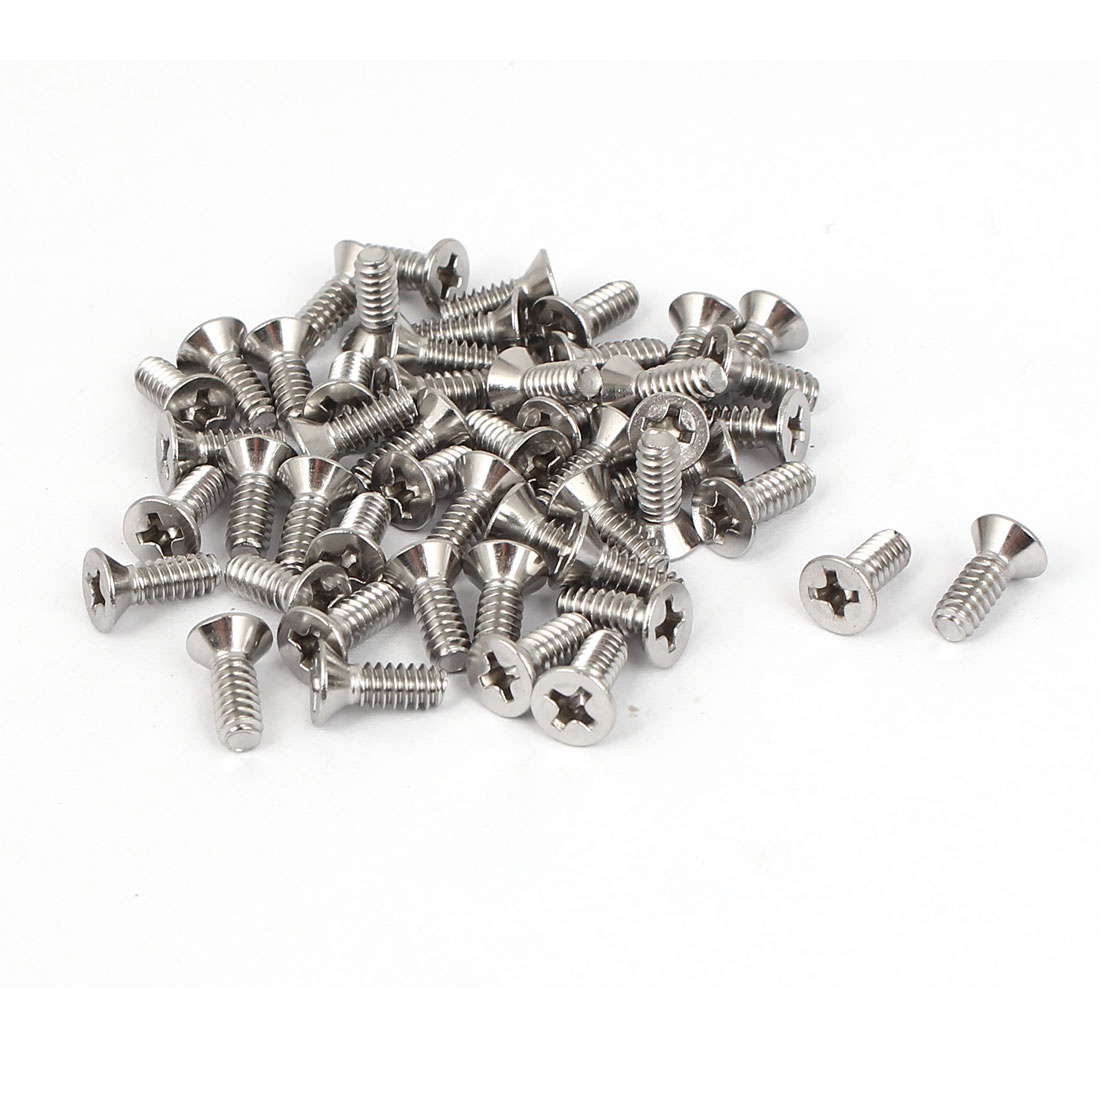 "6#-32x3/8"" Stainless Steel Phillips Flat Countersunk Head Screws 50pcs"